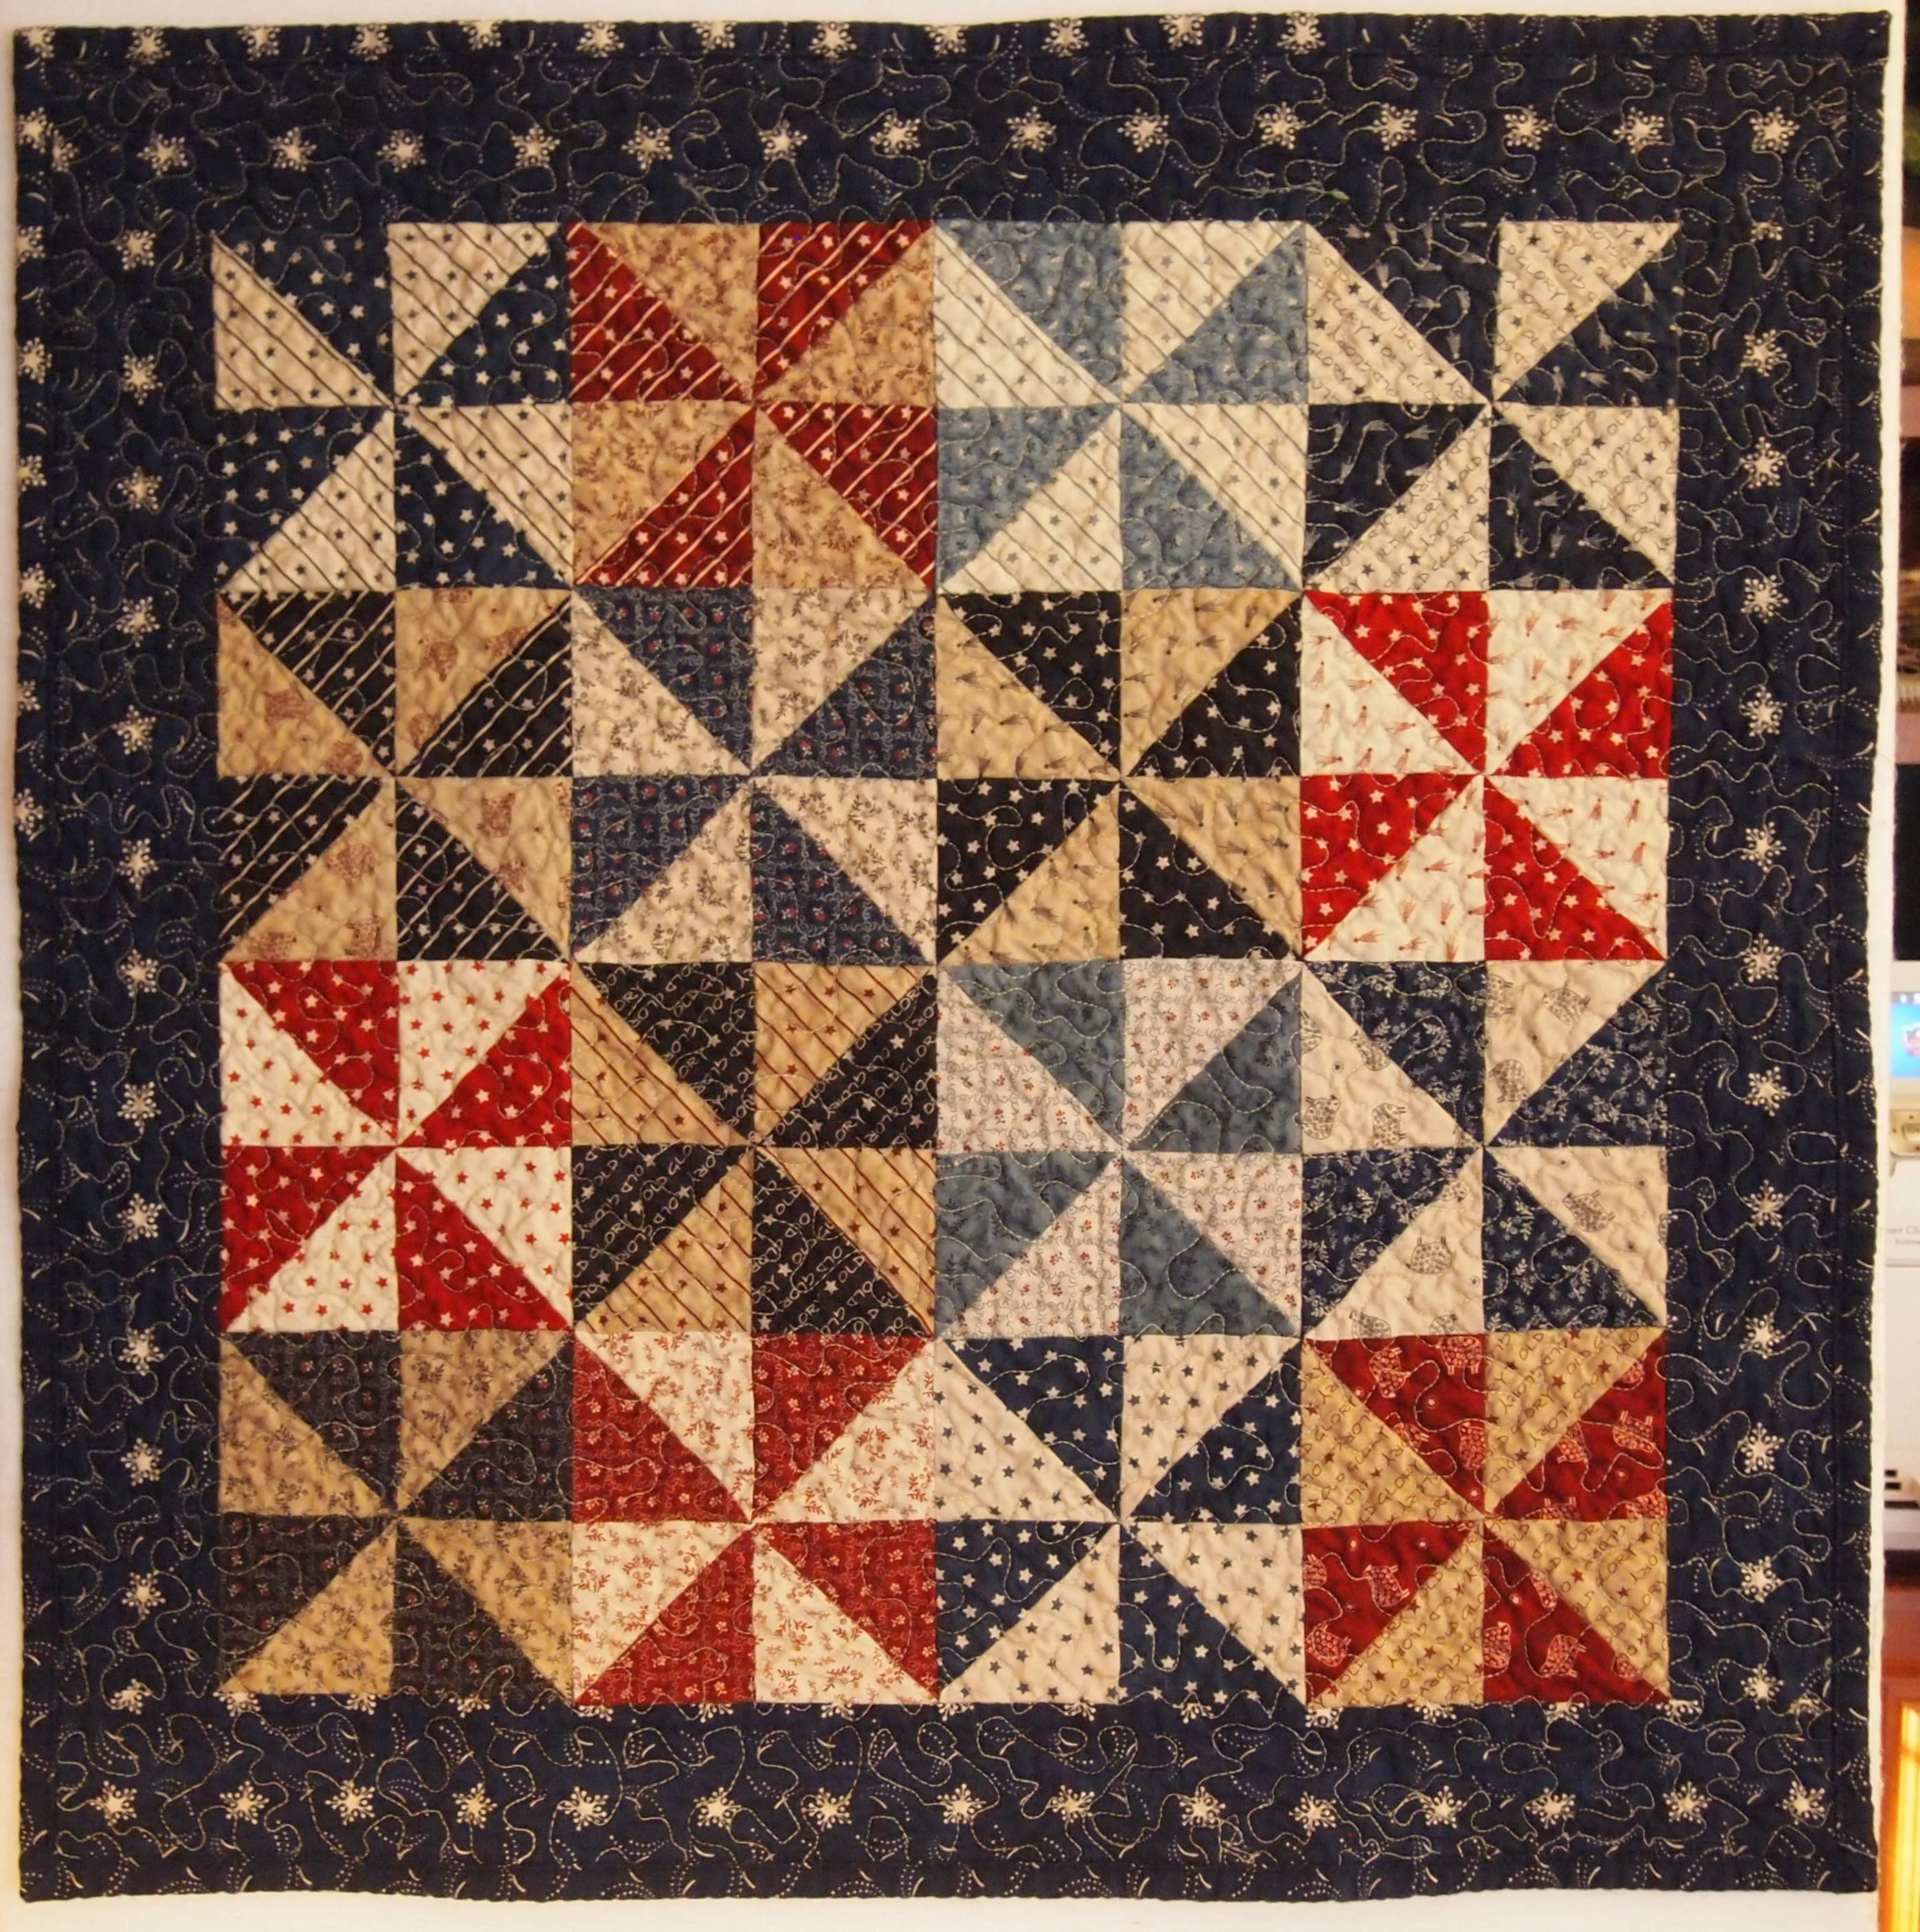 Civil War Southern Quilts Pattern | quilt for her birthday this ... : southern quilting mysteries - Adamdwight.com